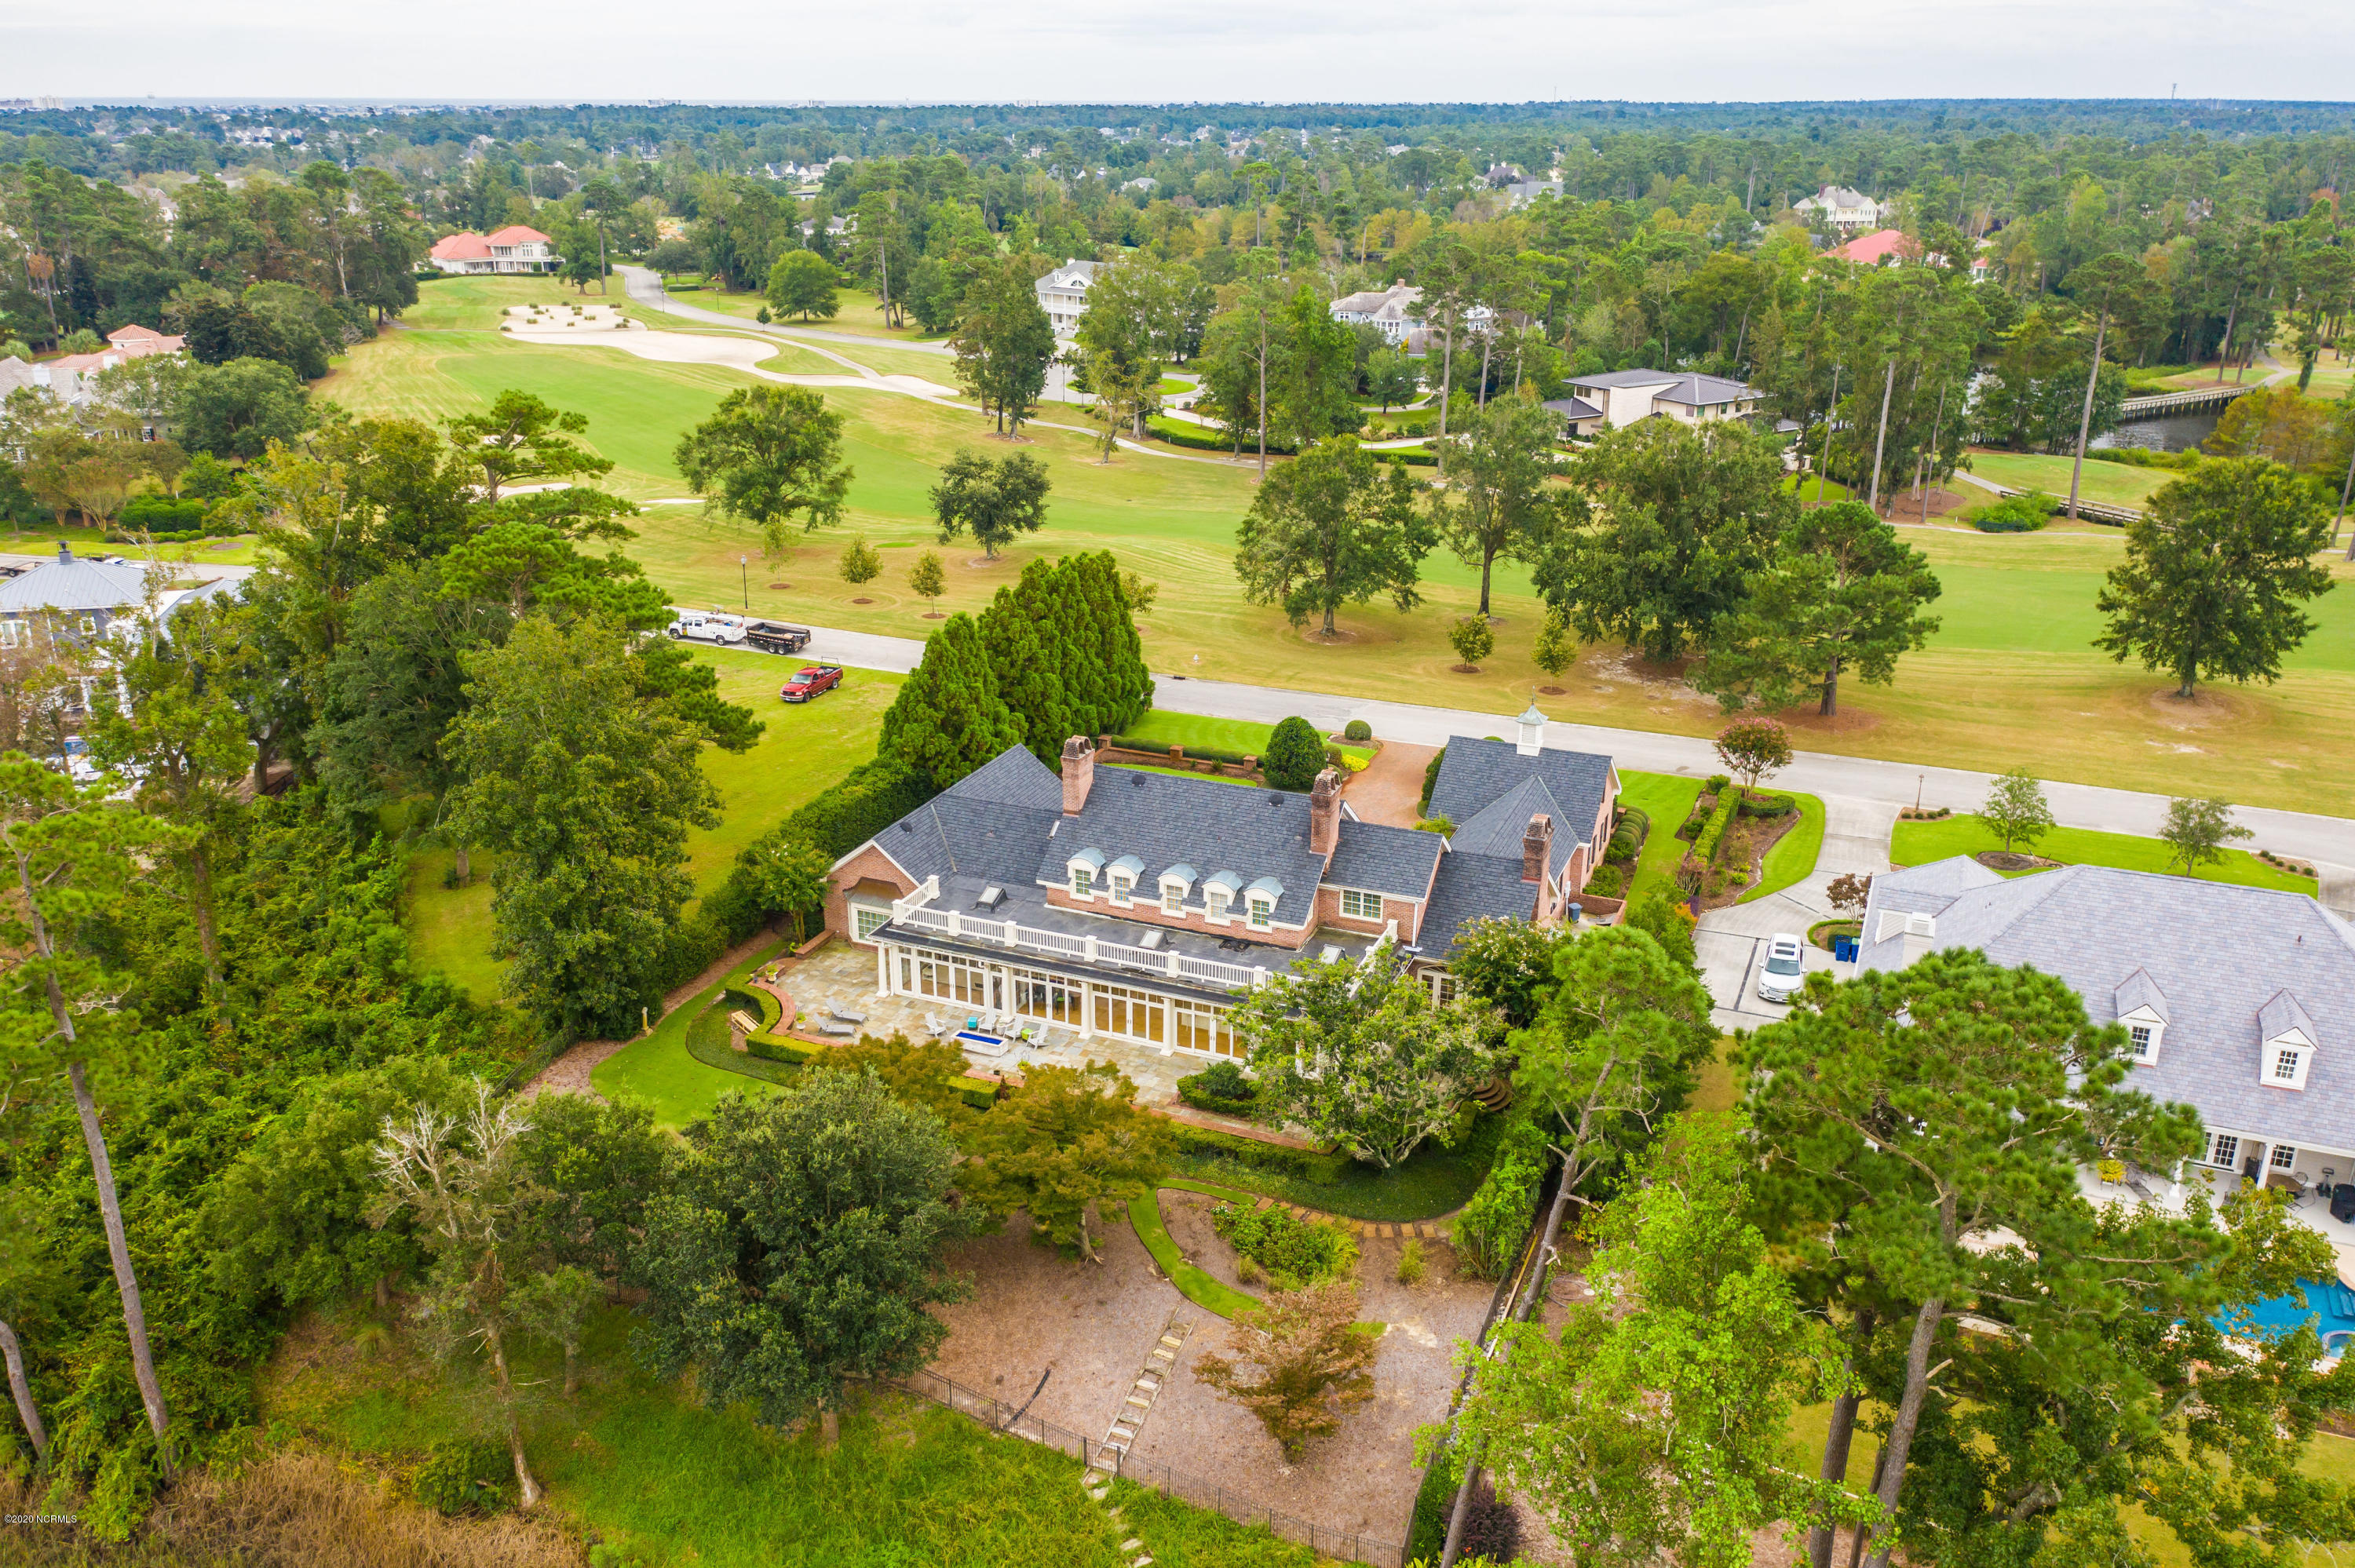 613 Dundee Place, Wilmington, North Carolina 28405, 5 Bedrooms Bedrooms, 12 Rooms Rooms,4 BathroomsBathrooms,Single family residence,For sale,Dundee,100239112